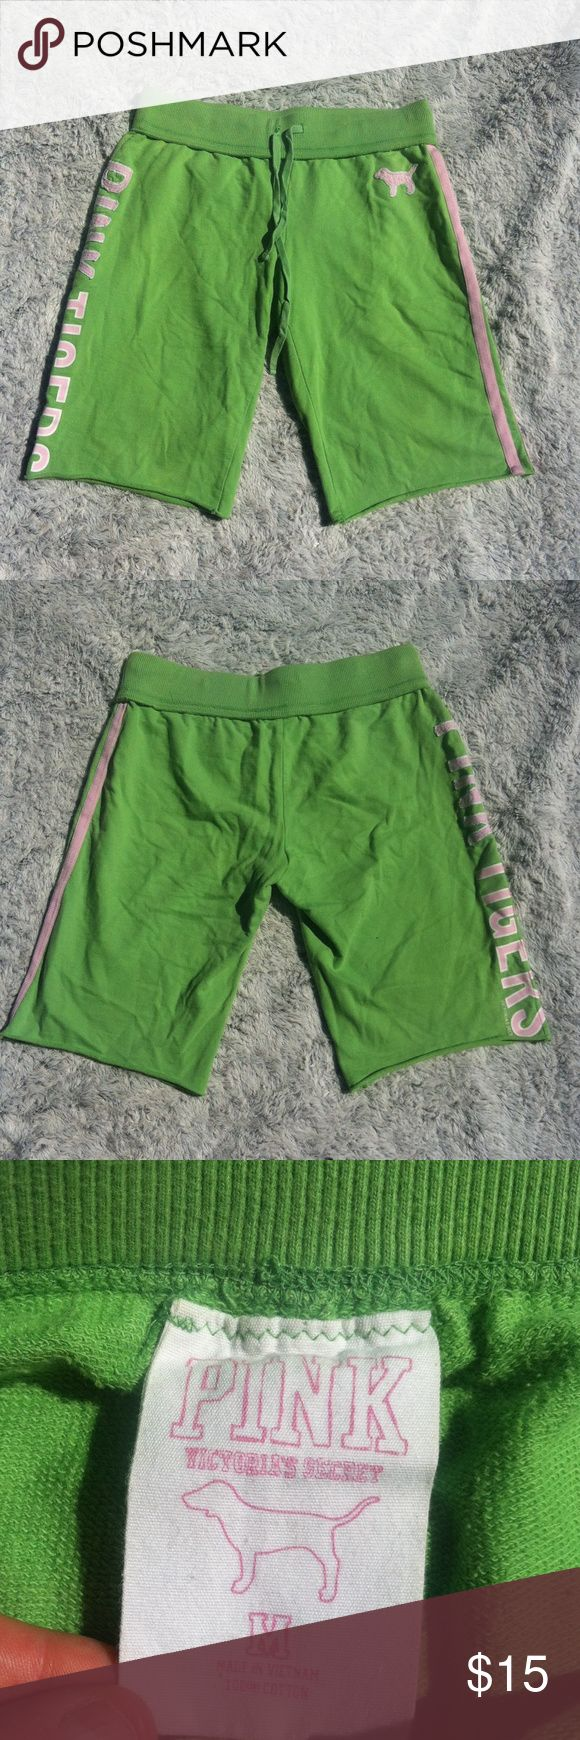 "Victoria's Secret Pink lime green sweat shorts Victoria's Secret lime green sweat shorts-""pink tigers"" written on left side, pink strip down left side. Decal if a pink dog on left side.  Size medium. Inseam 13"". PINK Victoria's Secret Shorts"